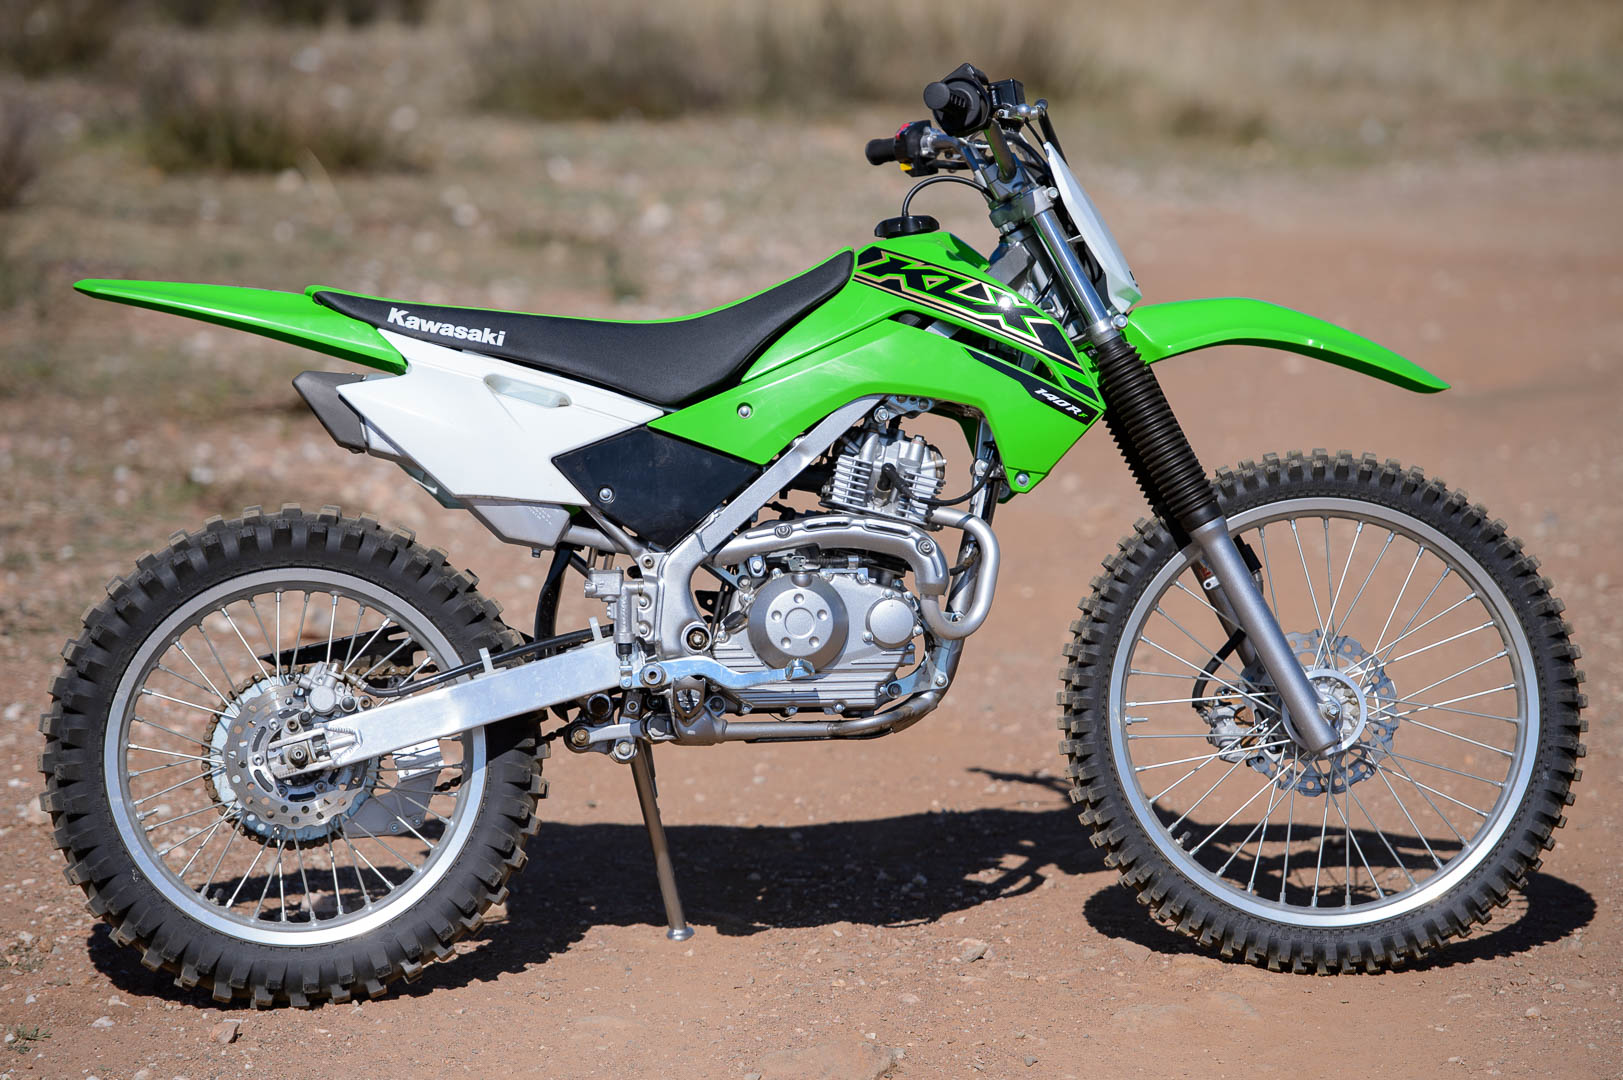 2021 Kawasaki KLX140R F Review: Off-Road Motorcycle Test